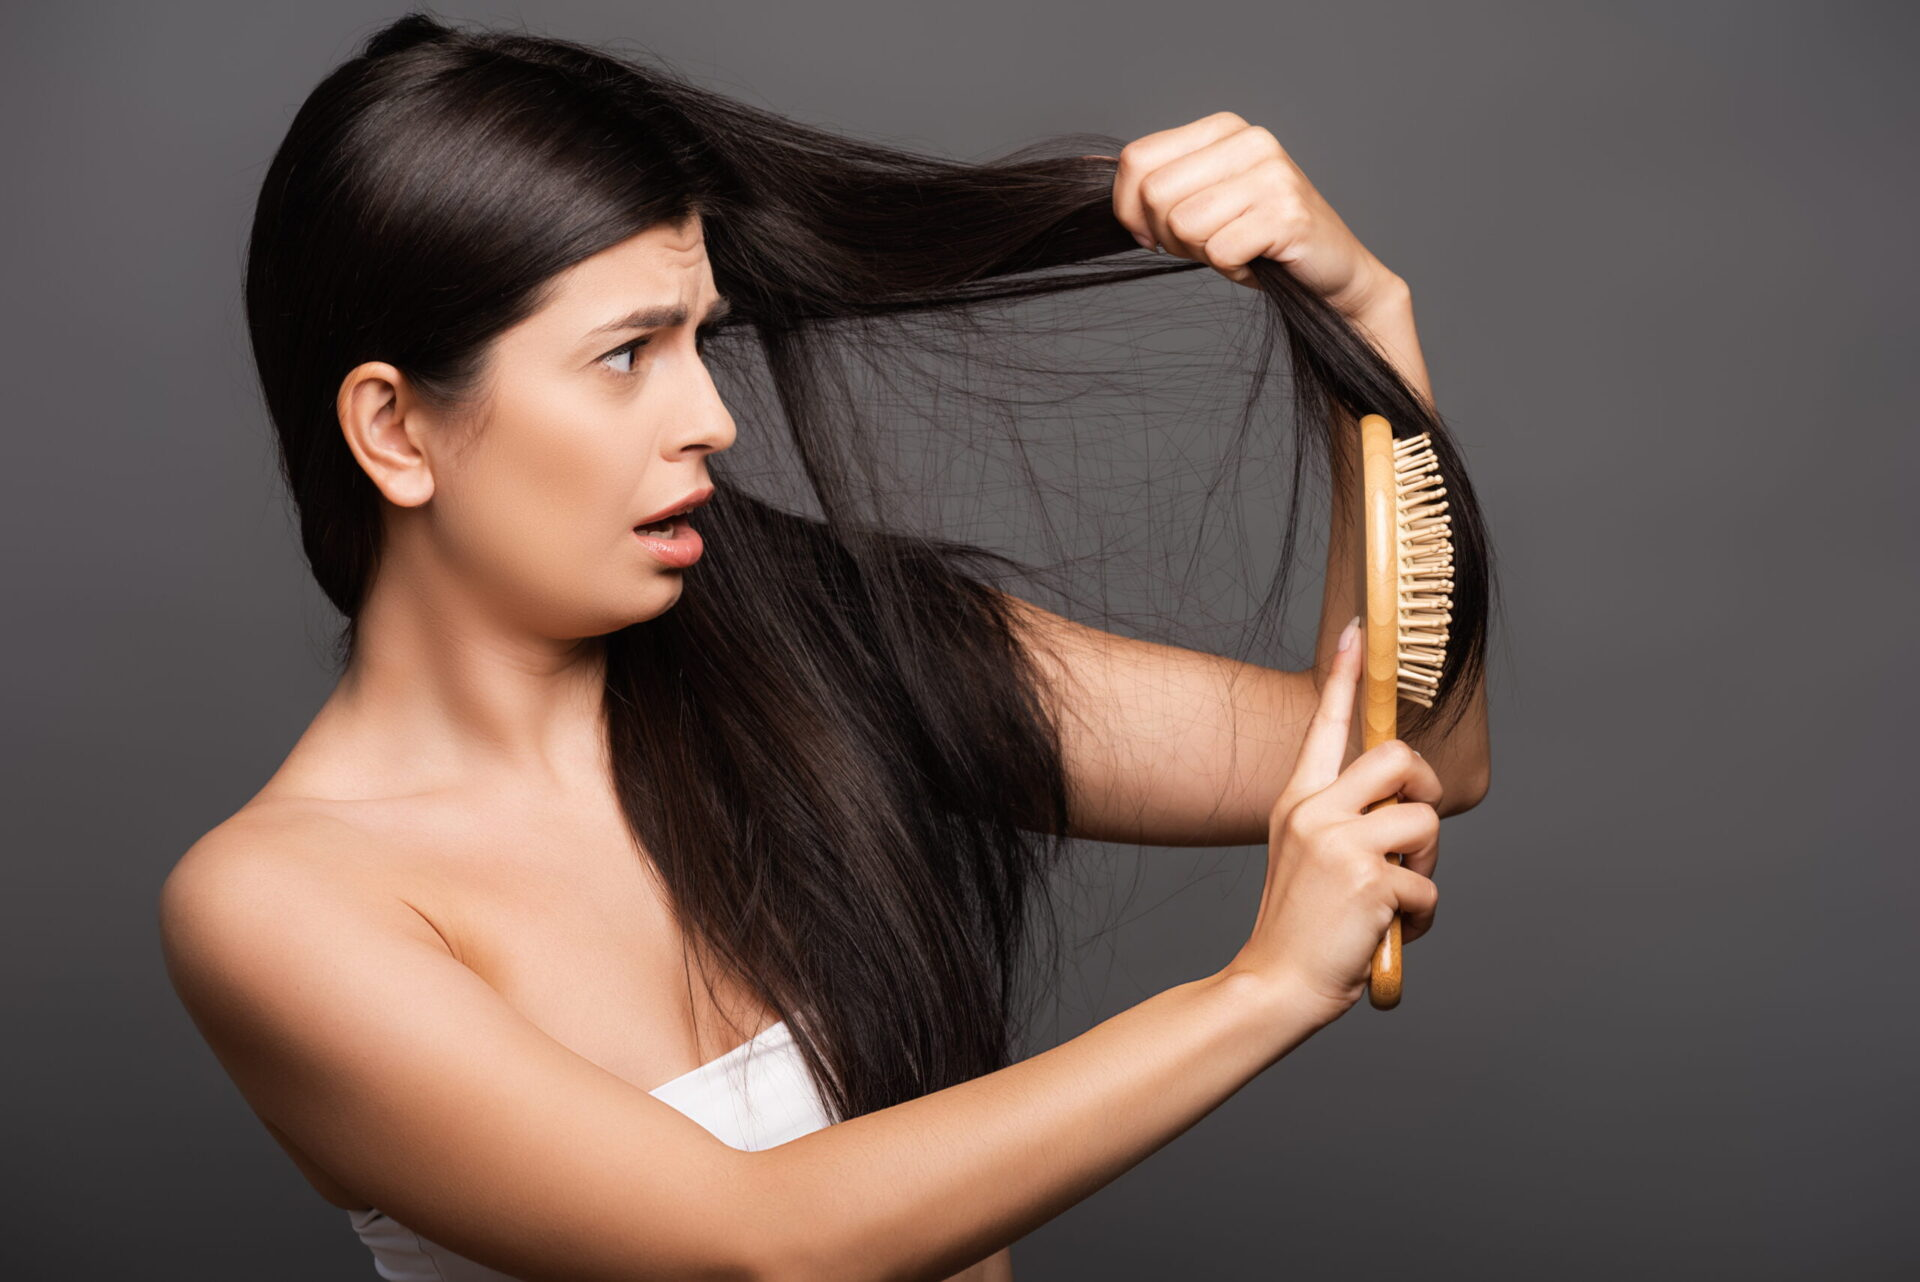 Latino woman looking at her oily hair that needs dry shampoo